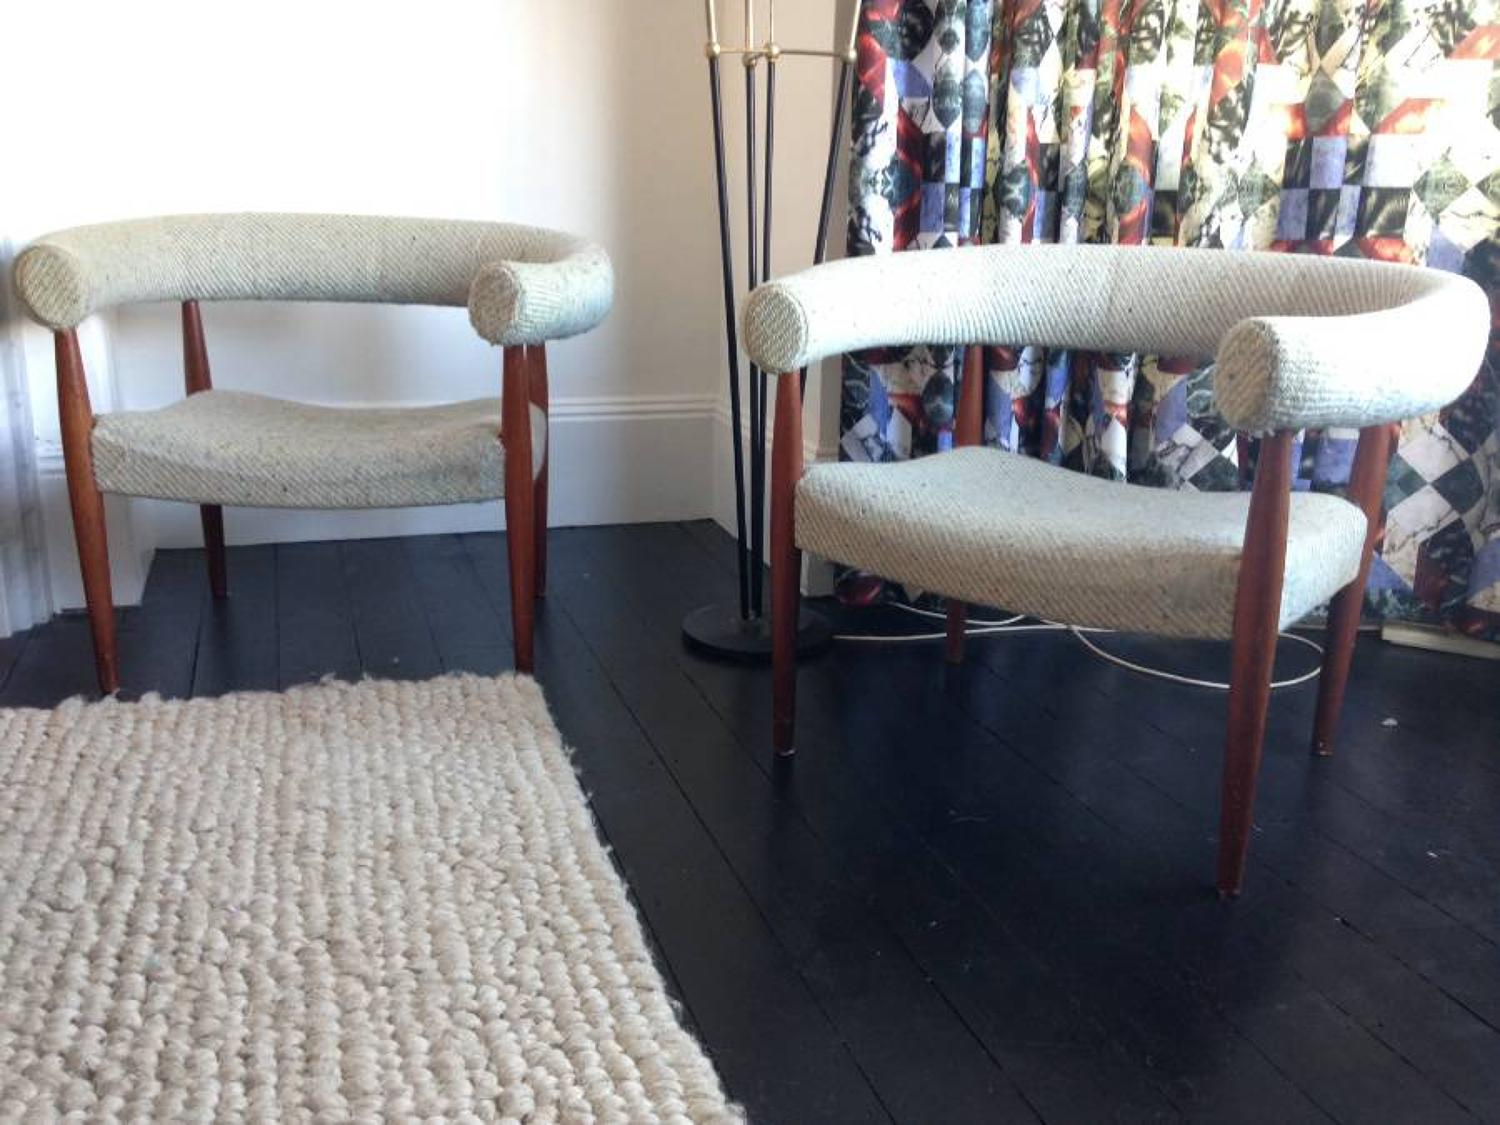 A pair of sausage or ring chairs by Nanna Ditzel